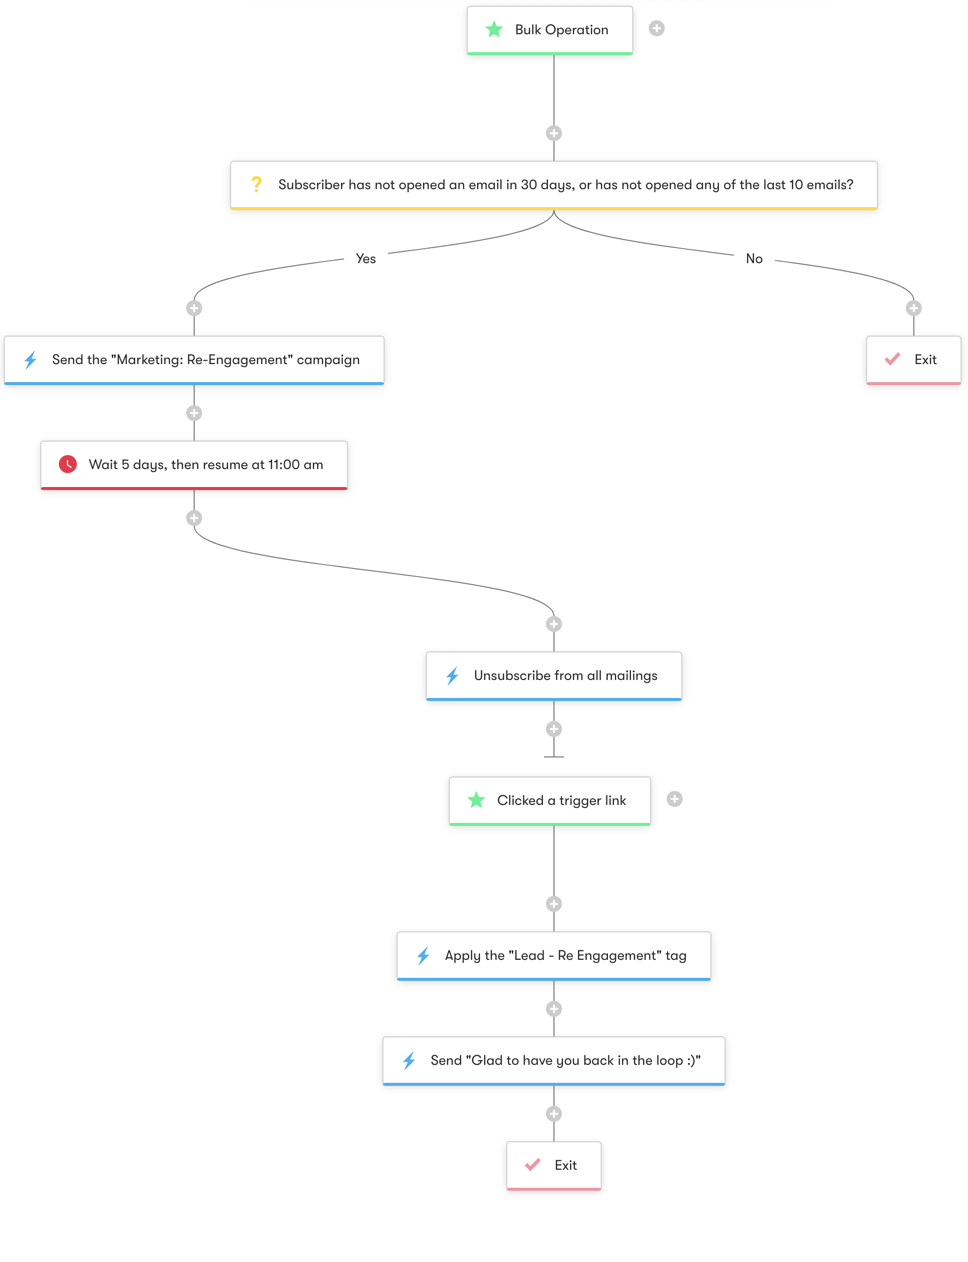 Re-Engagement and List Pruning - Workflow Diagram